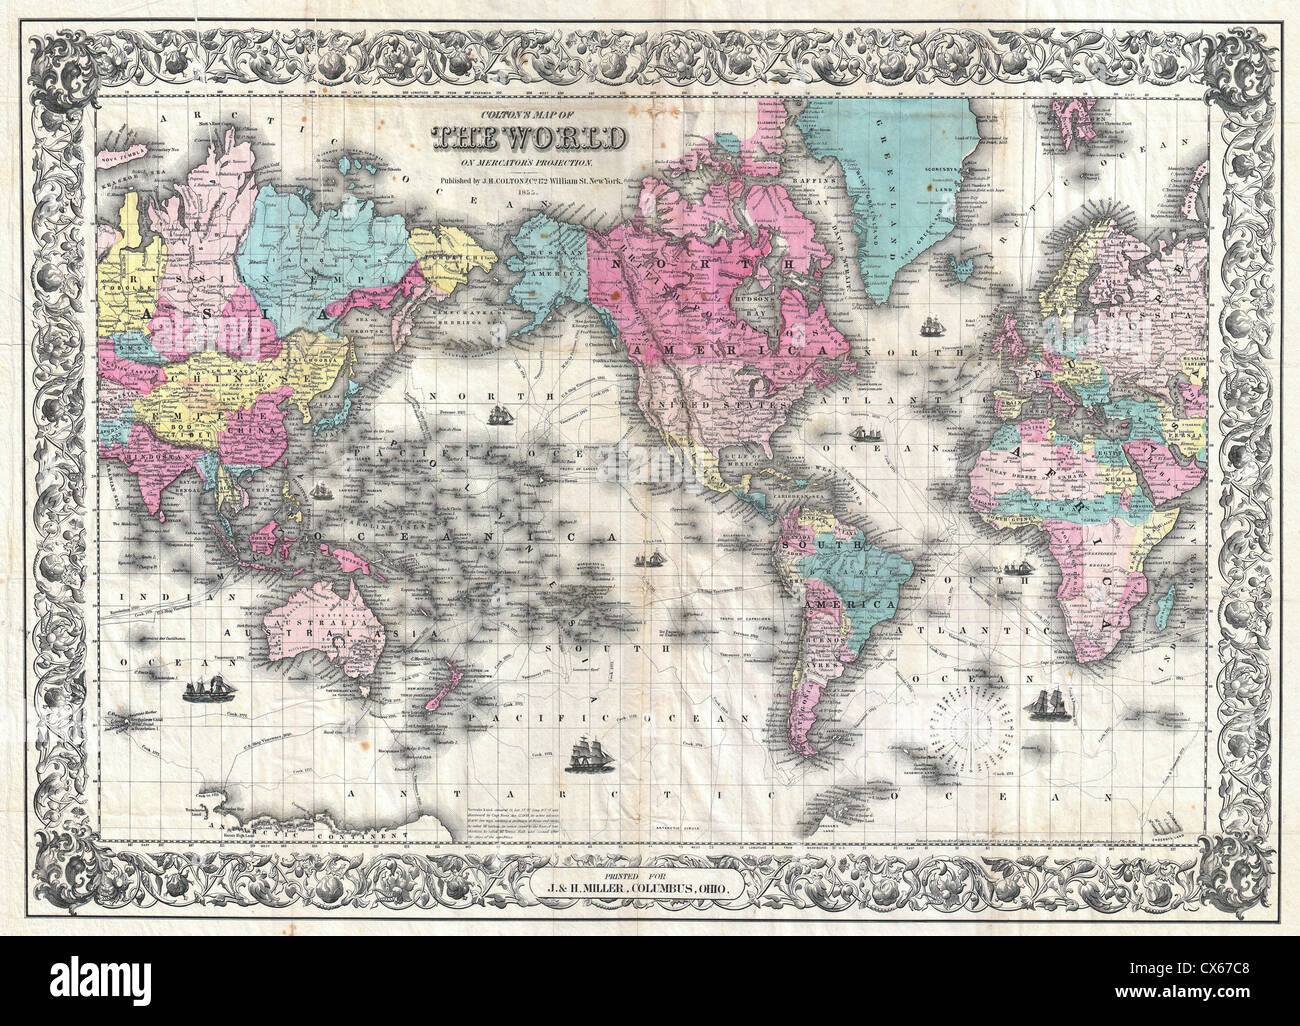 1852 Colton's Map of the World on Mercator's Projection ( Pocket Map ) - Stock Image